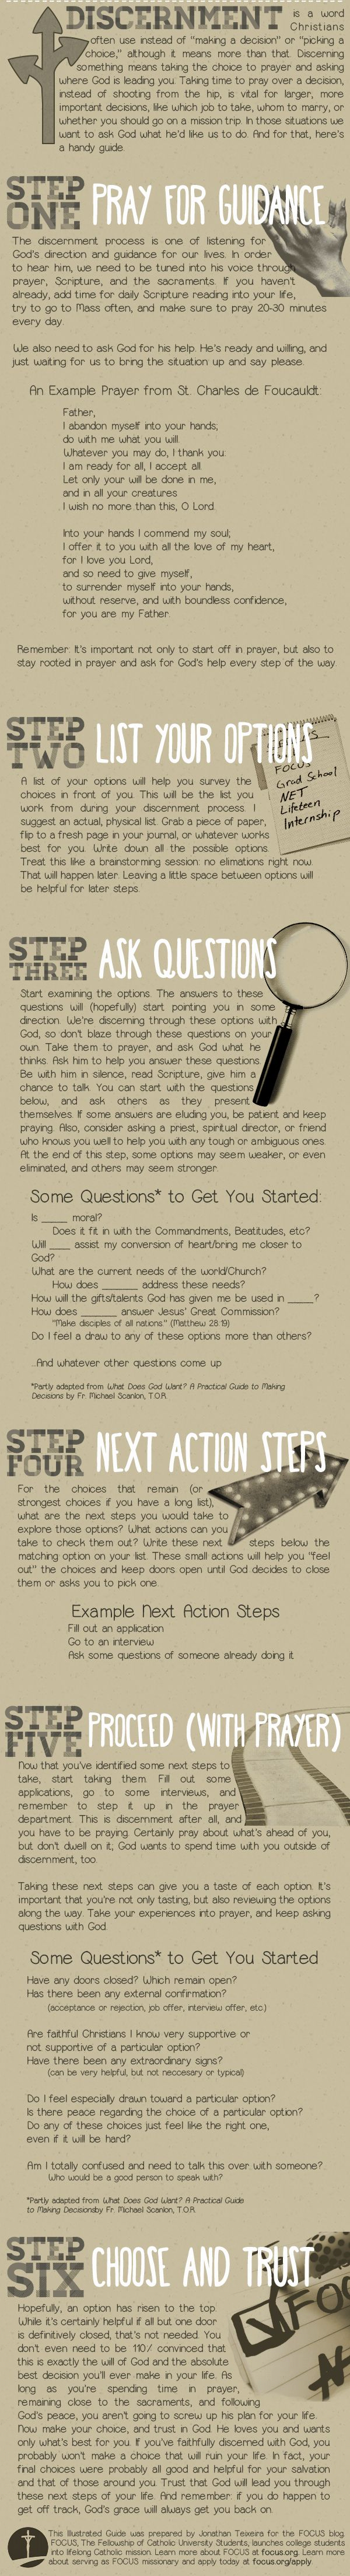 Pursuing Chastity & Finding Love - Vocations